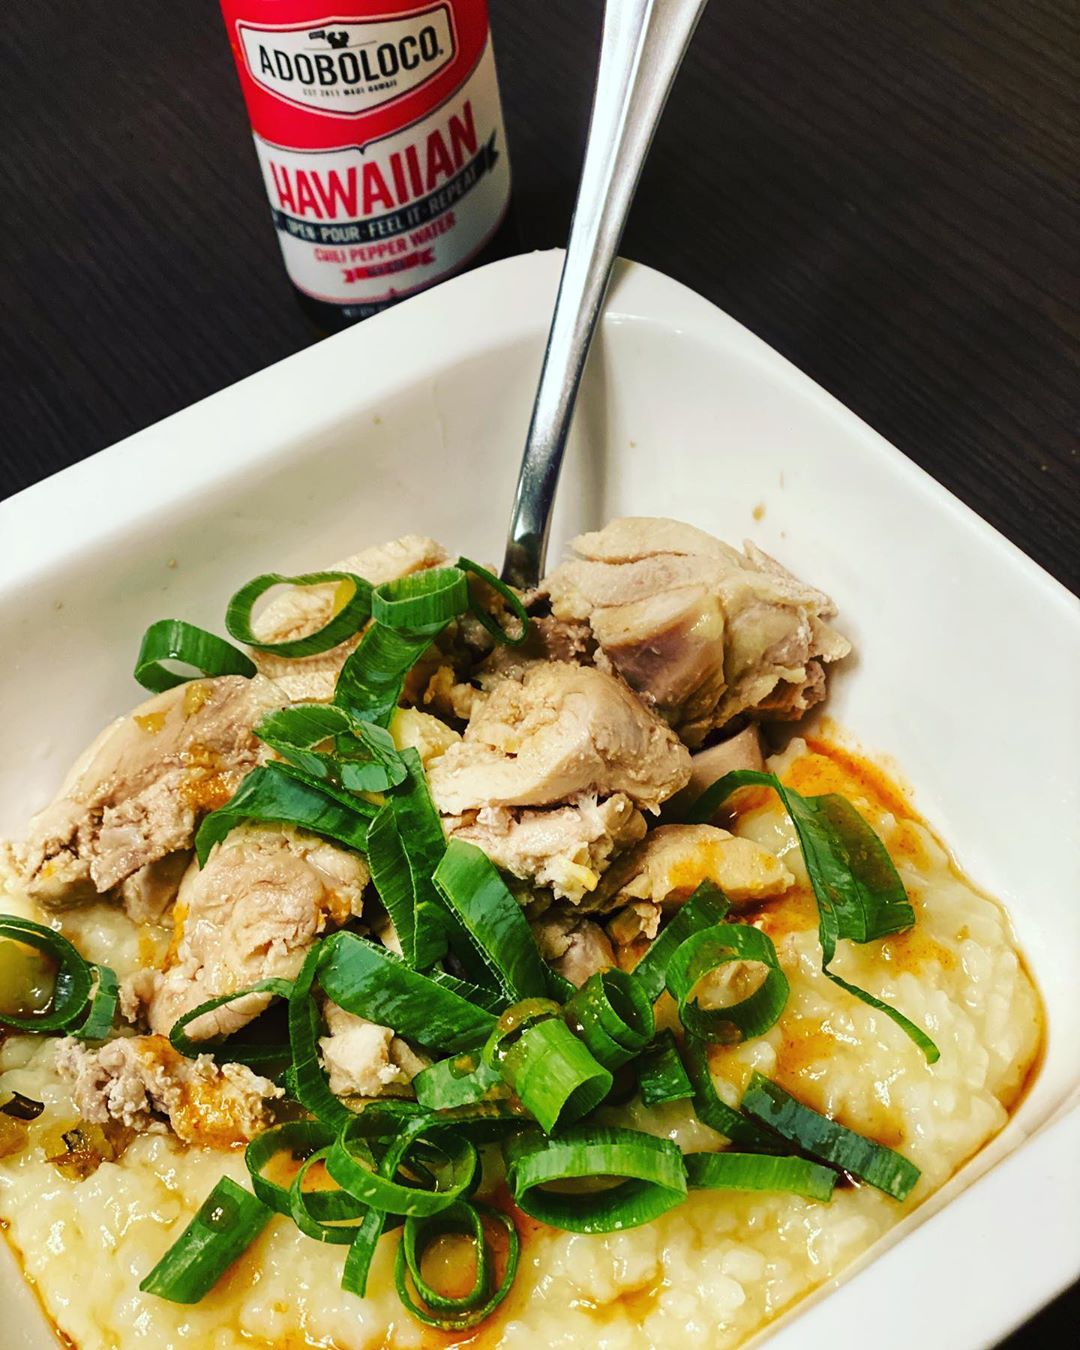 Ginger chicken congee with Hawaiian chili pepper water